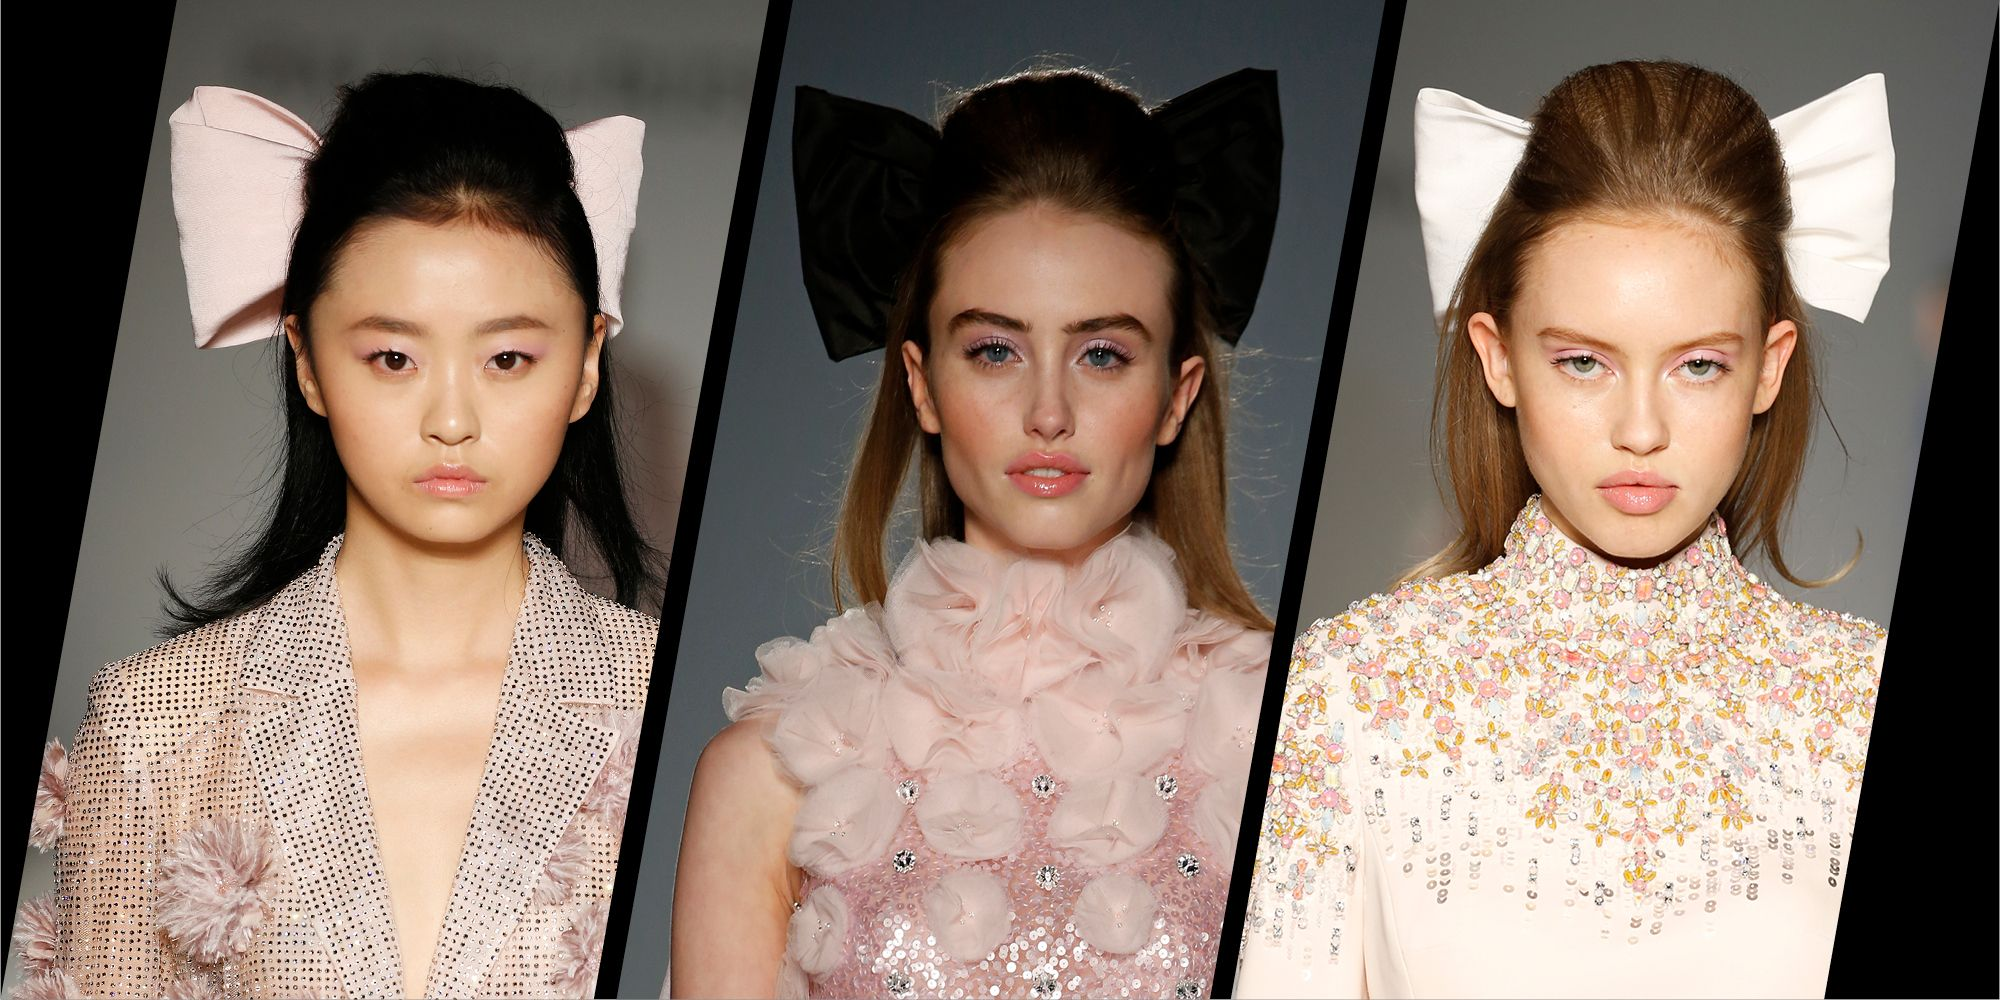 When couture and Clueless collide: Models at Ralph & Russo channelled Alicia Silverstone with their hair